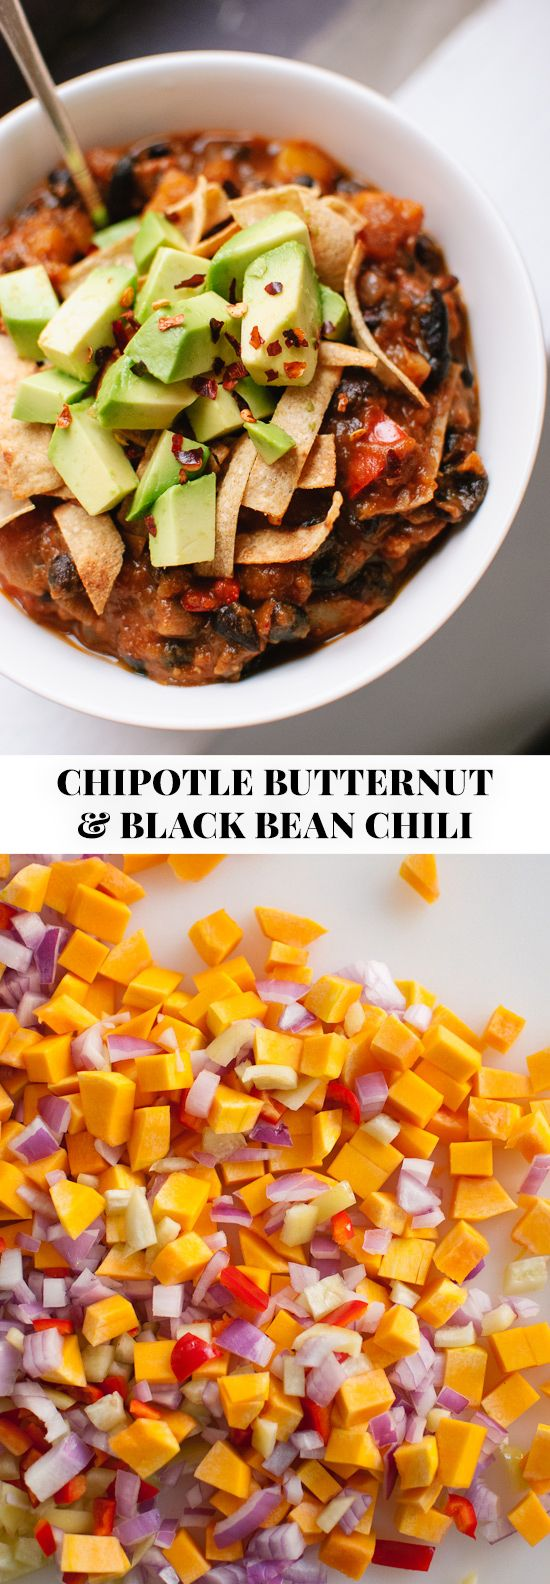 25+ best Recipes For Butternut Squash ideas on Pinterest ...